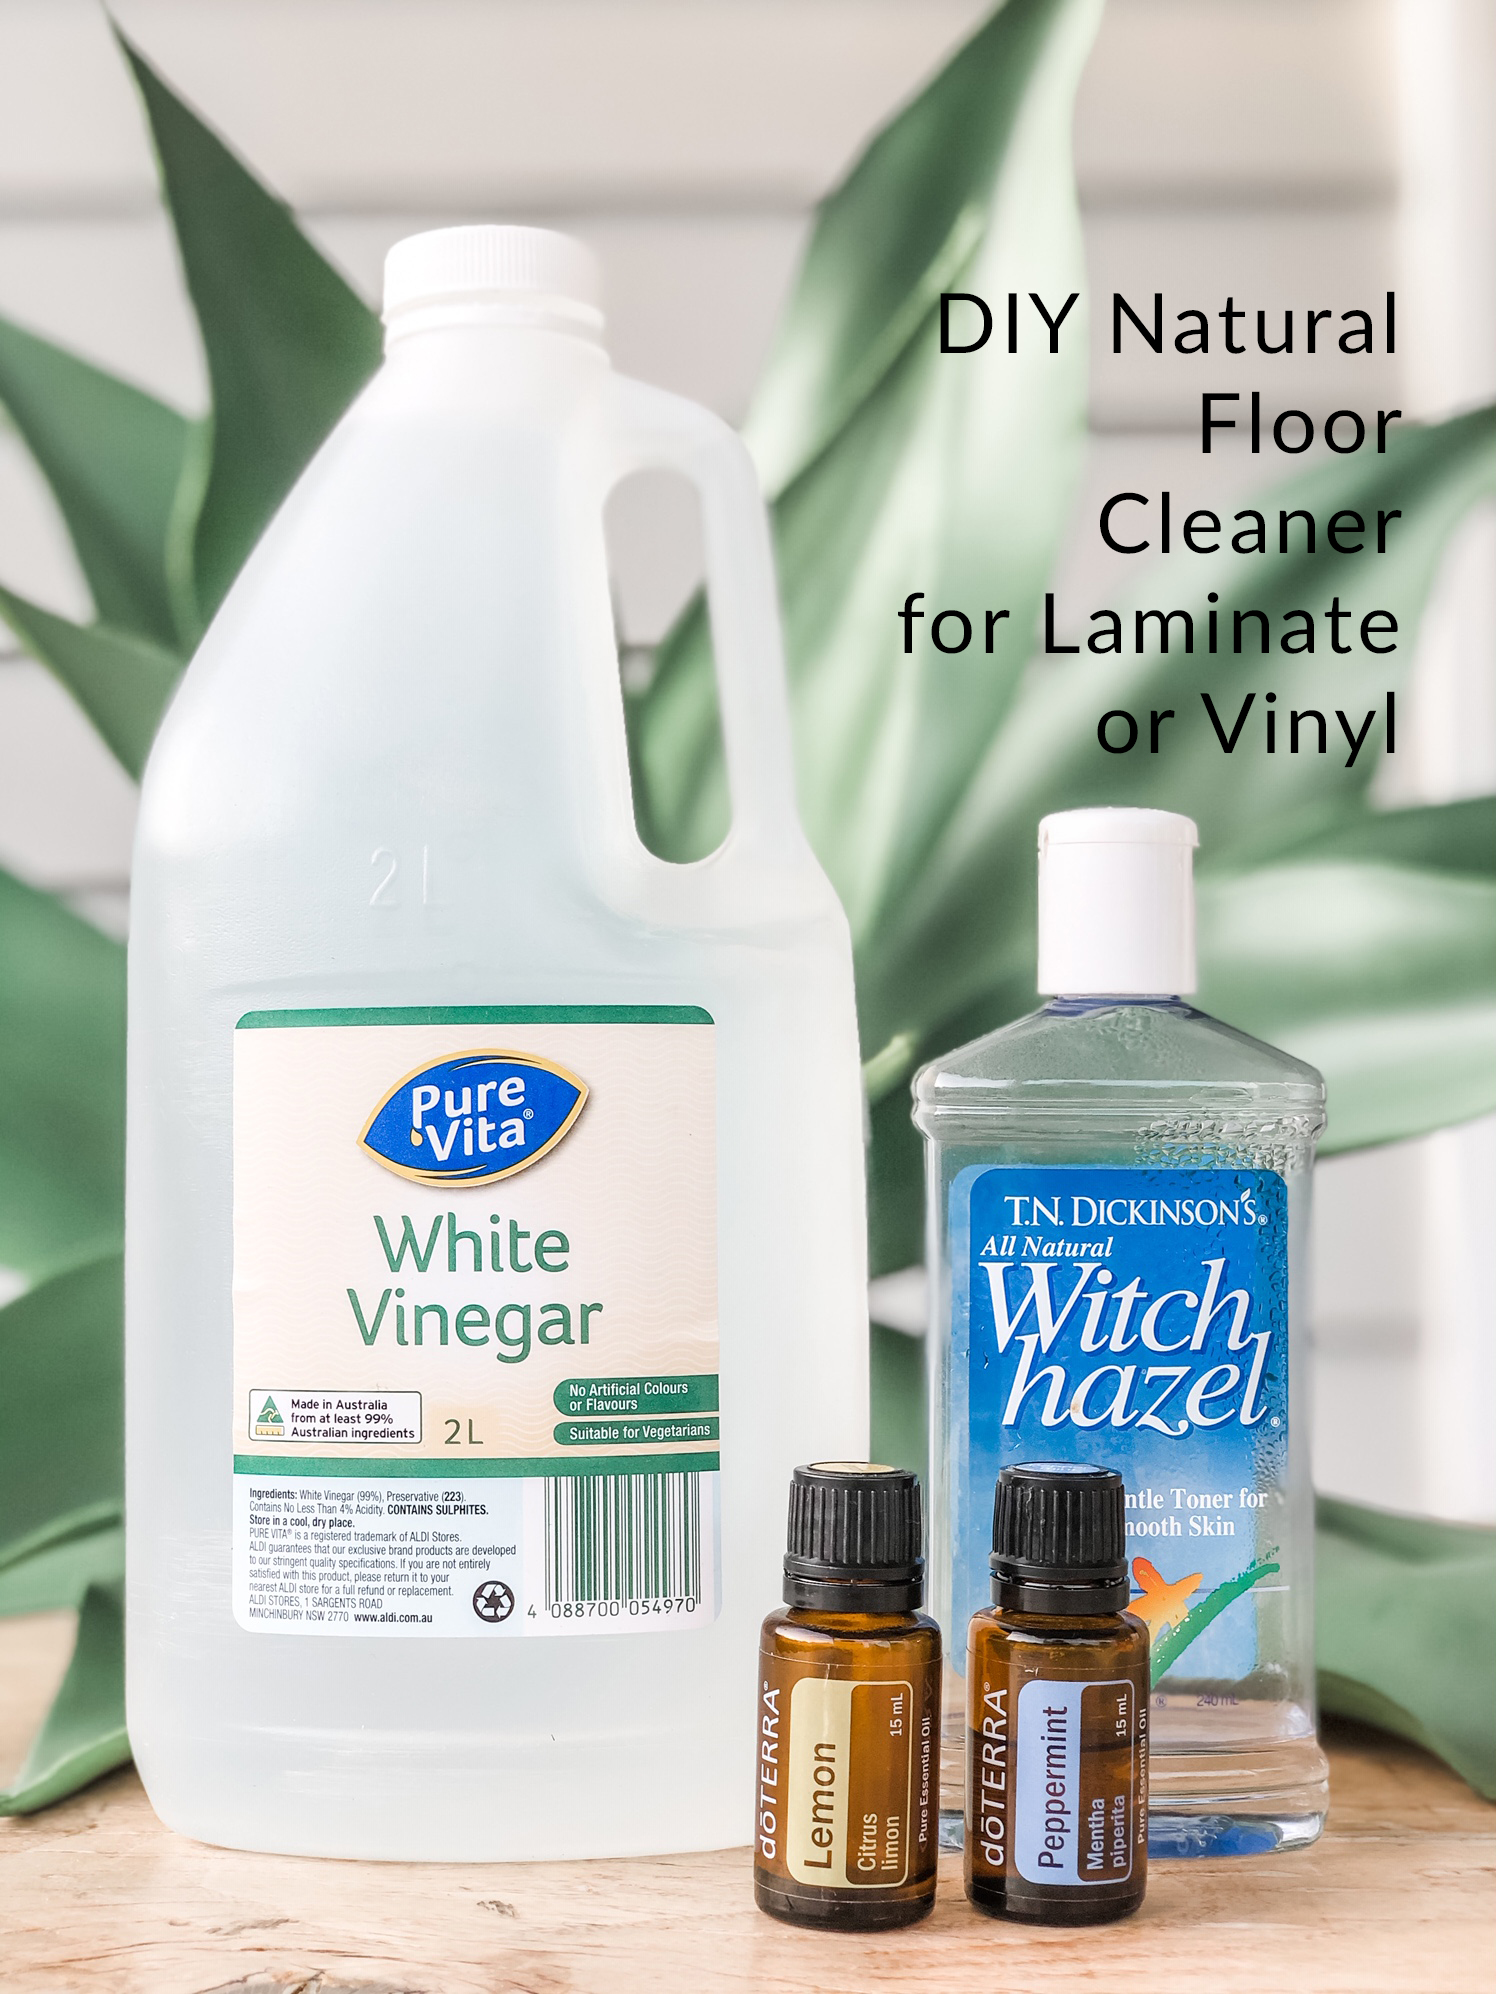 Diy Natural Floor Cleaner For Laminate Or Vinyl